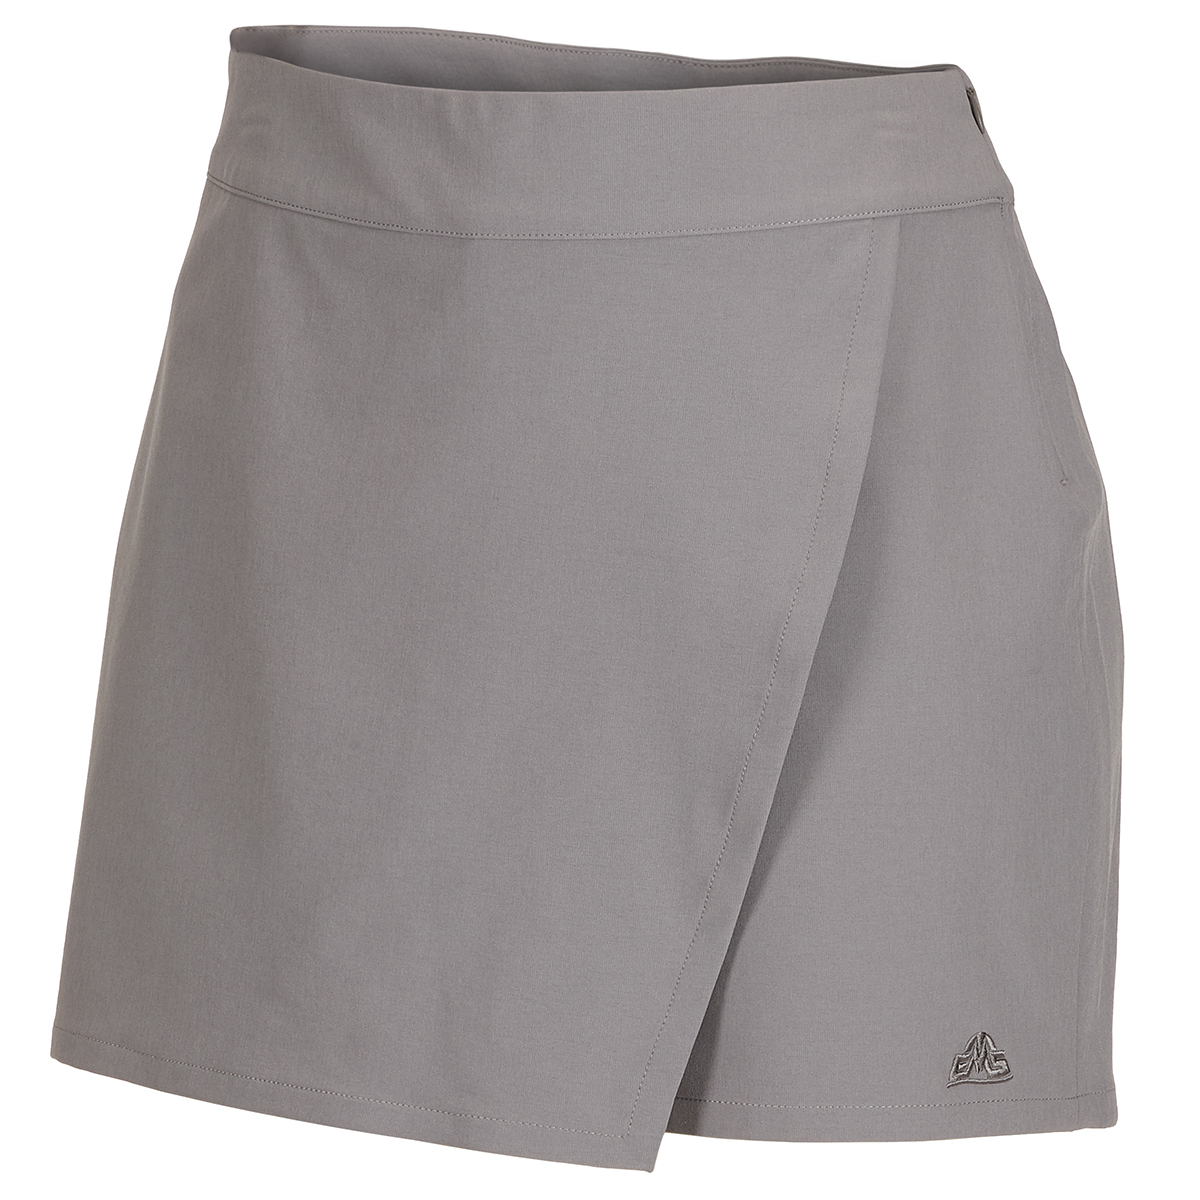 Ems Women's Aspire Skort - Black, 0